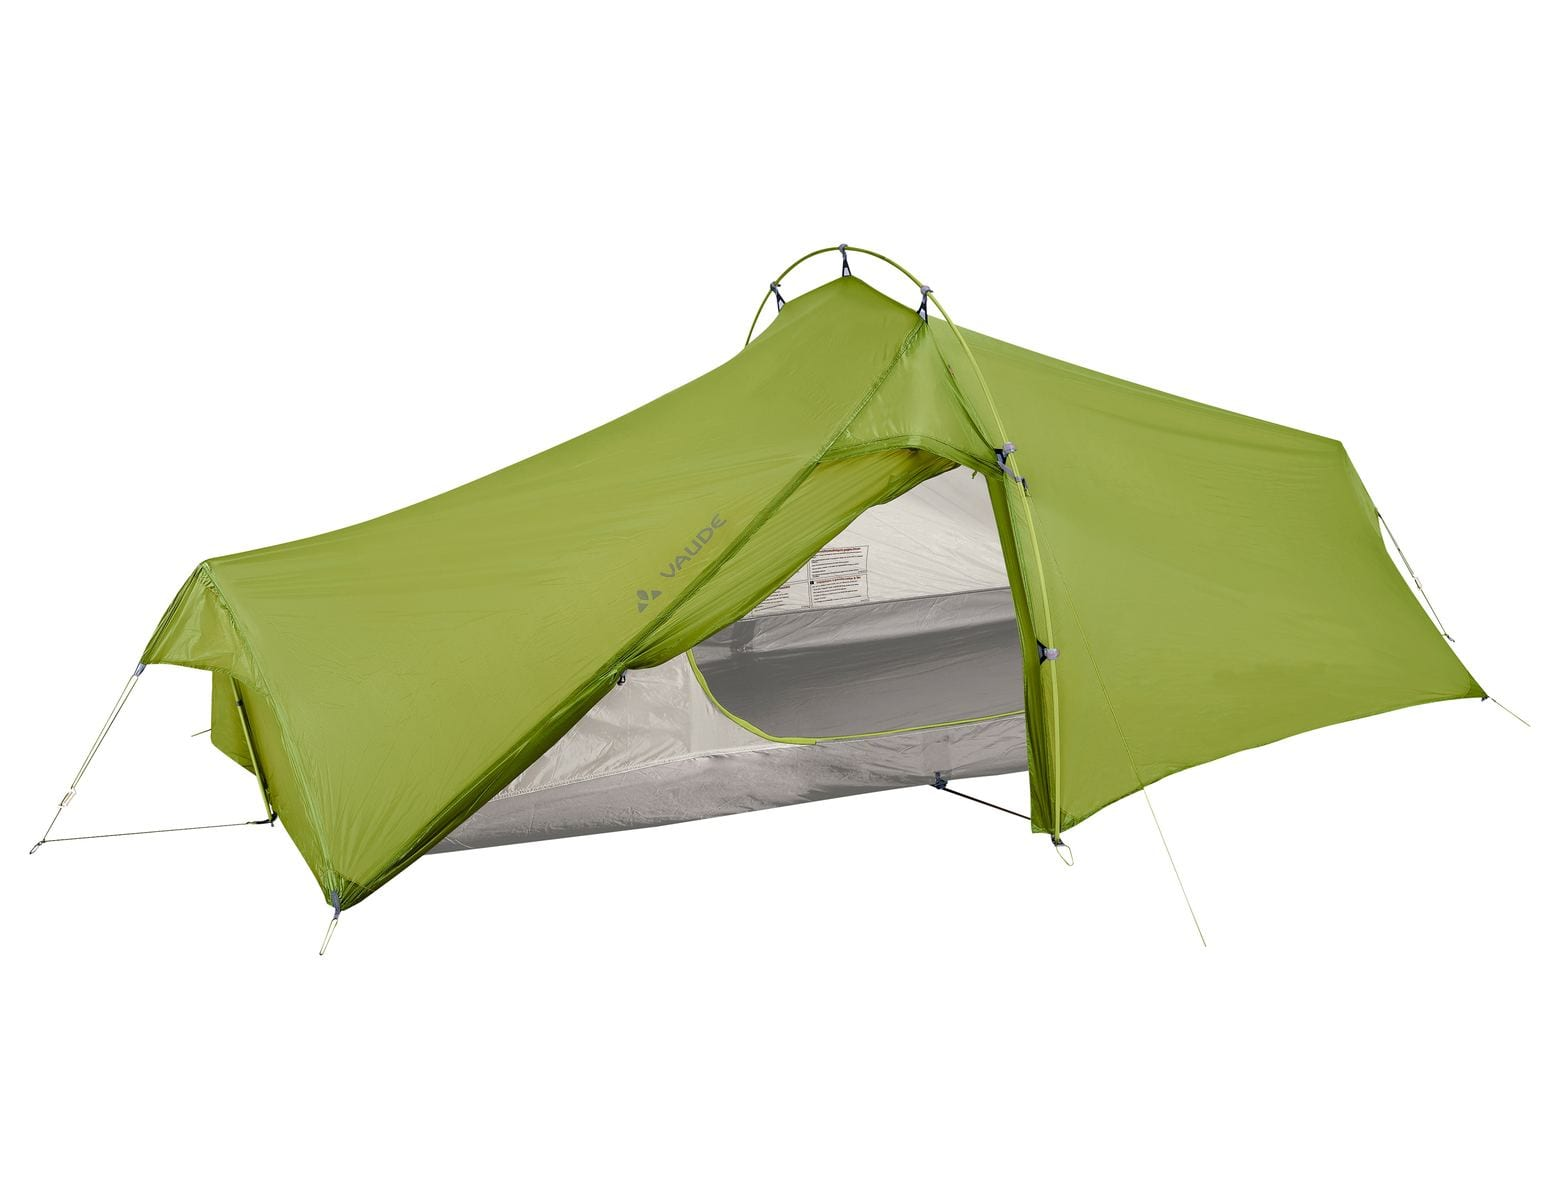 Vaude Power Lizard SUL 1-2P cress green för camping & uteliv.